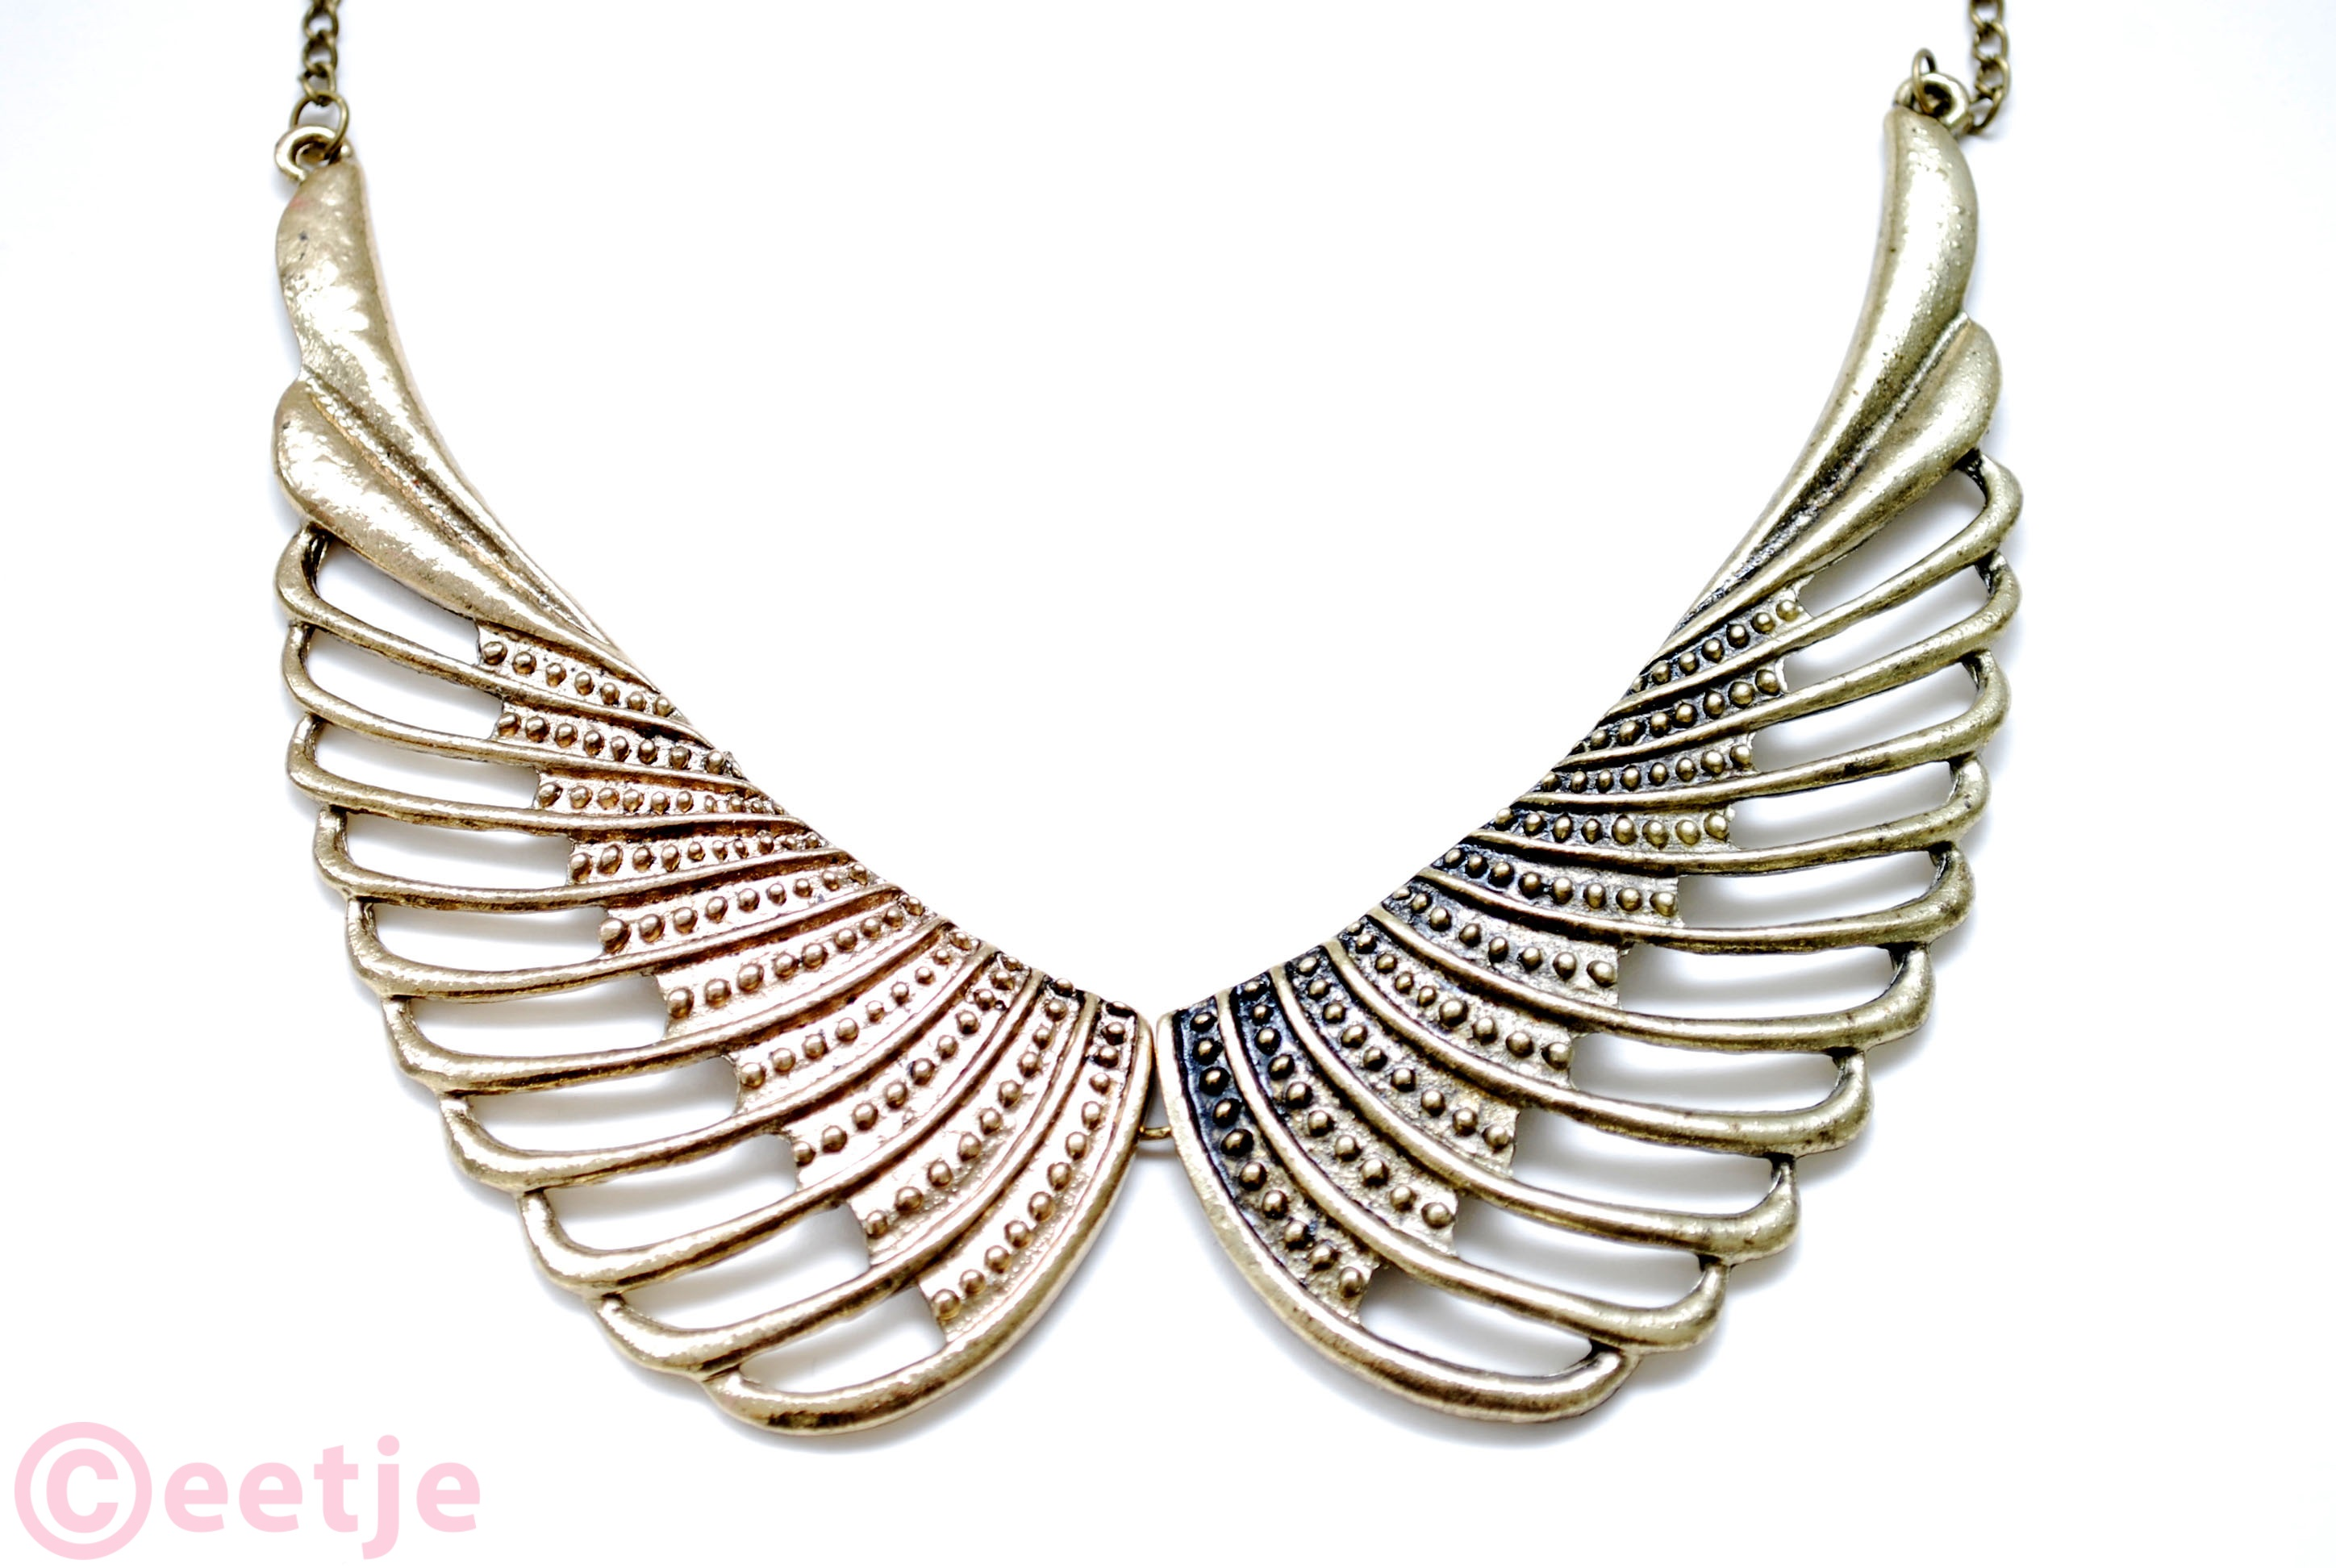 Kraag wing collar necklace ketting